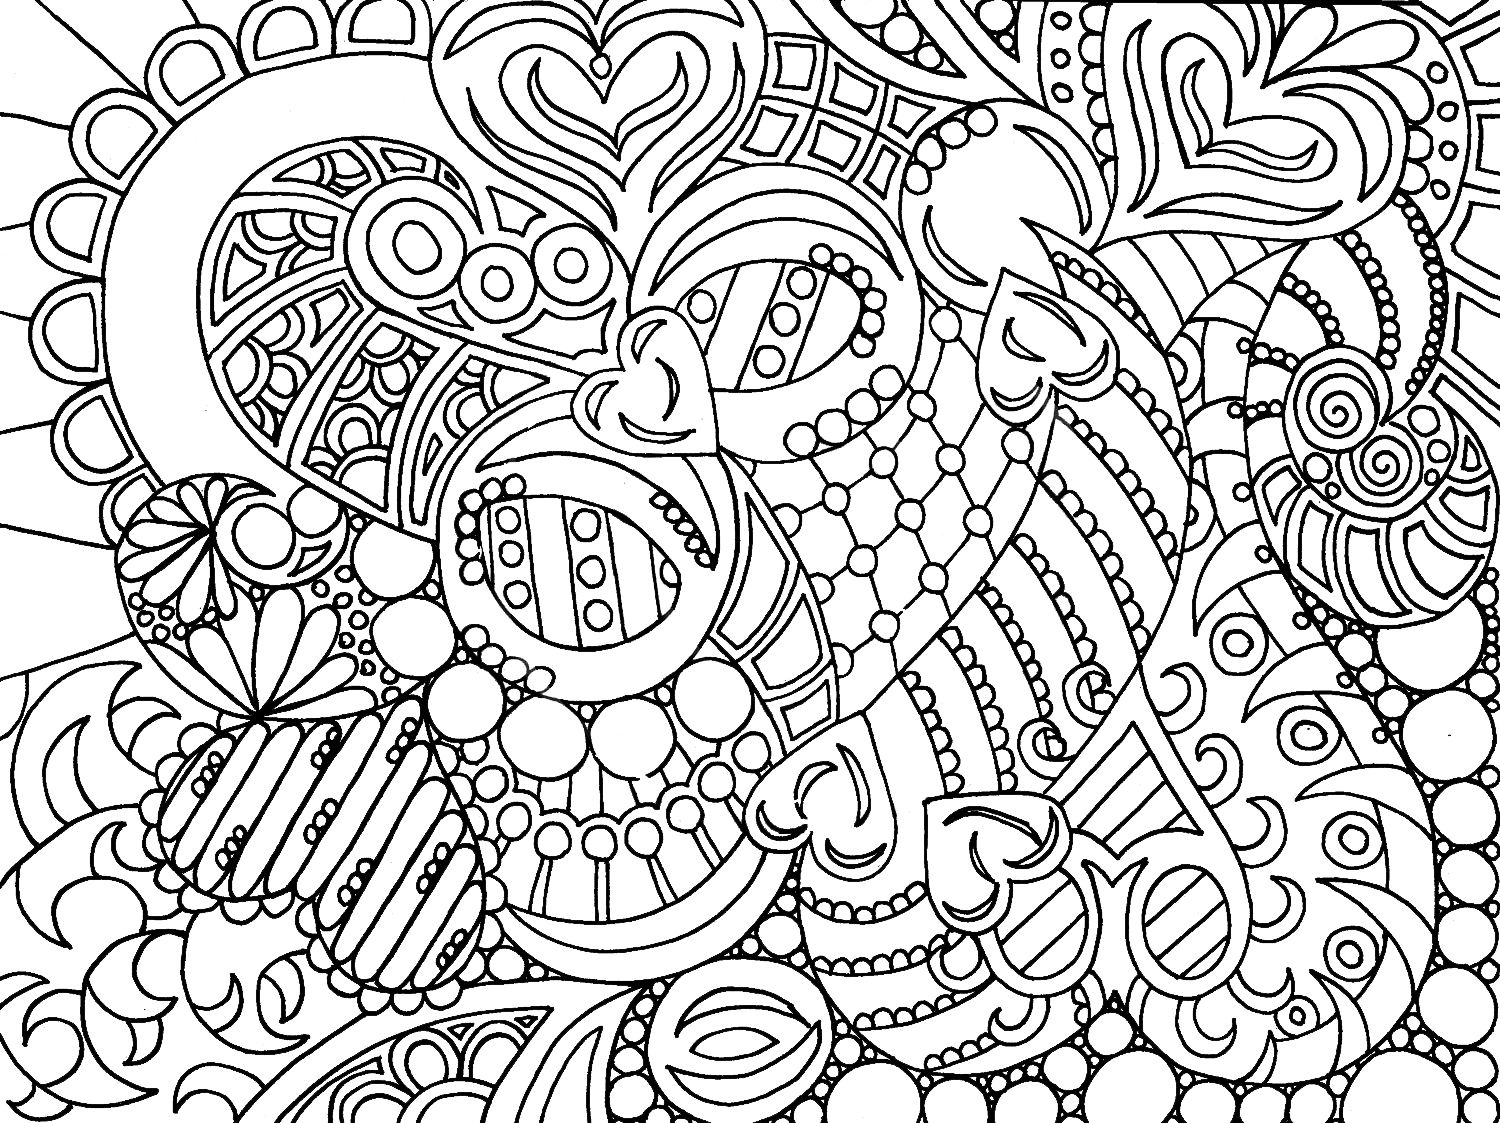 Advanced coloring pages adults - Coloring Pages & Pictures - IMAGIXS ...